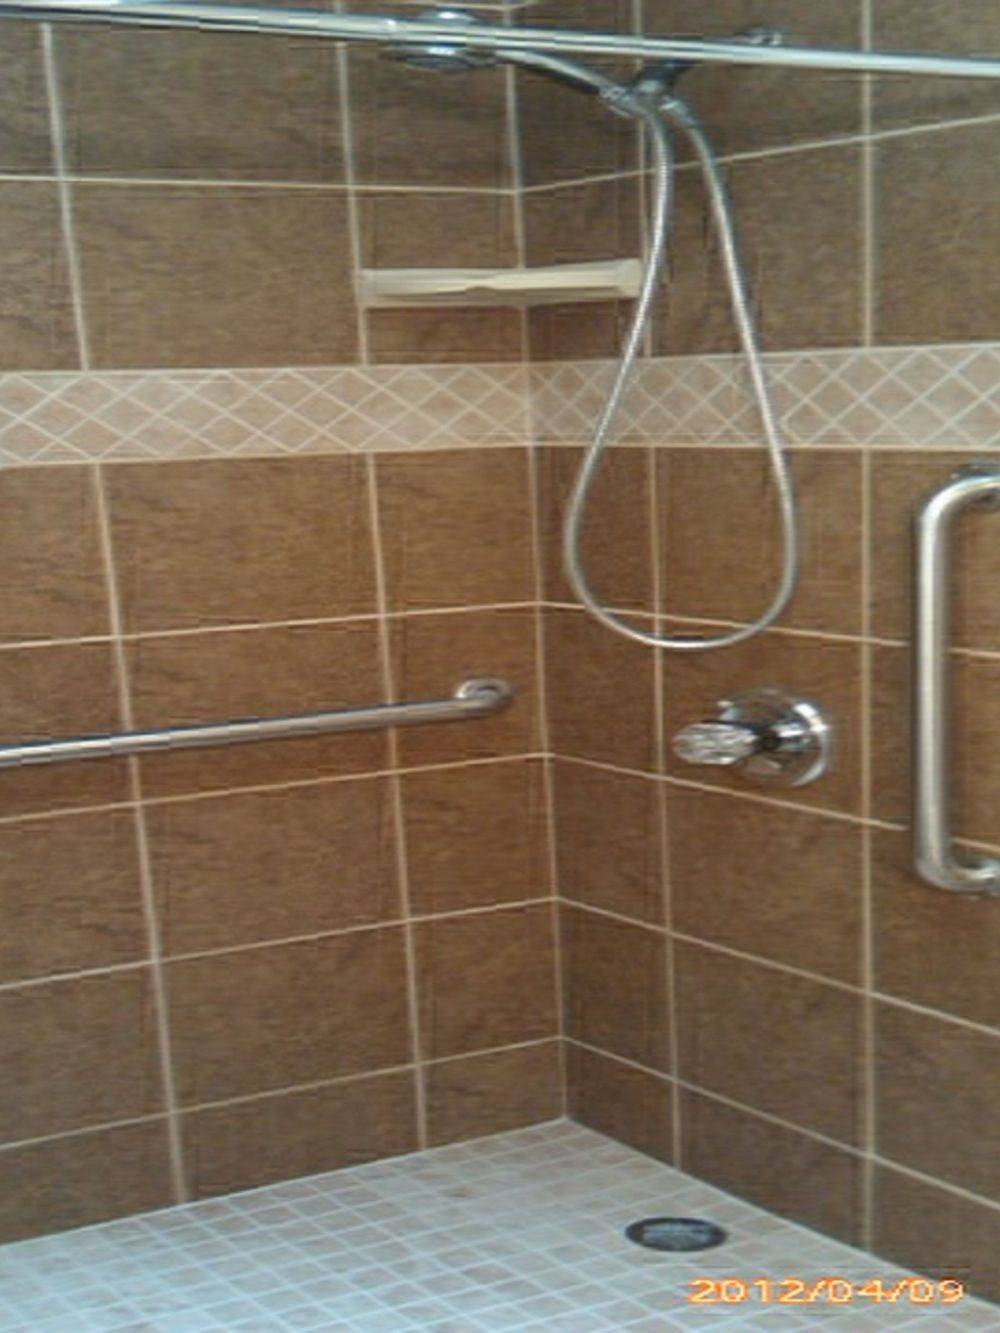 room addition contractor, google my business general contractor, google my business bathroom remodeler